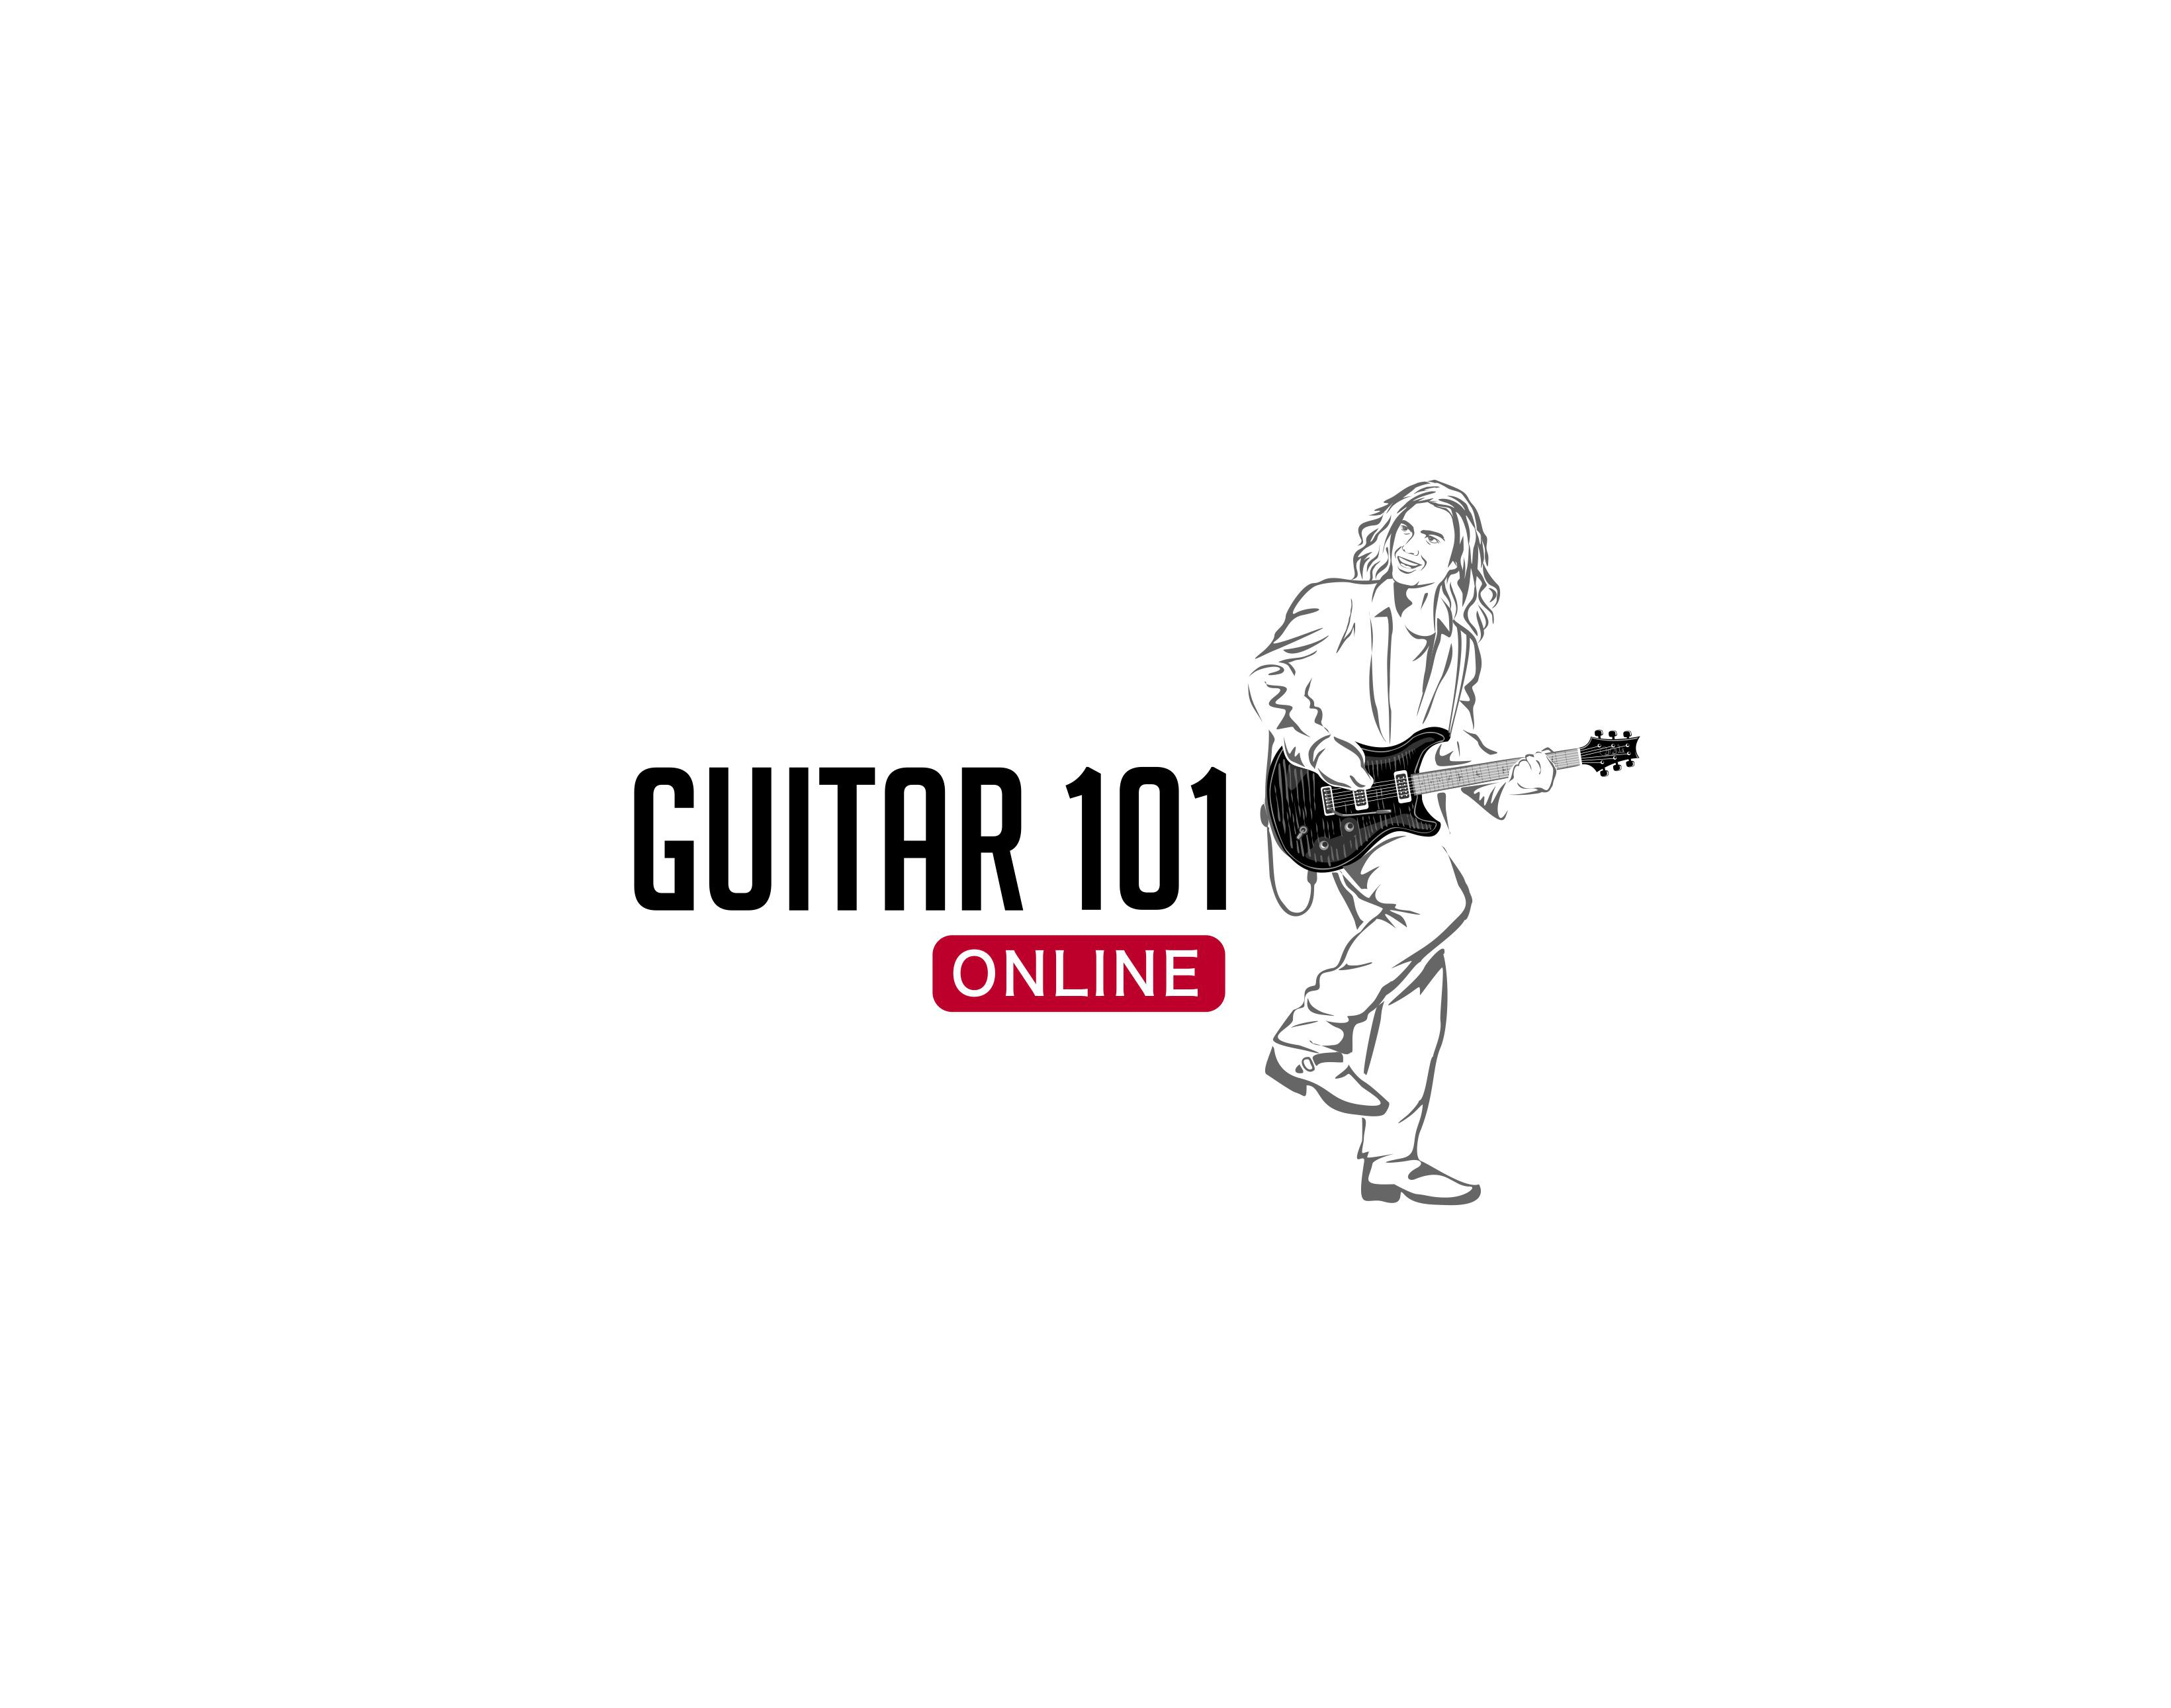 Create a cool logo for GUITAR 101 ONLINE